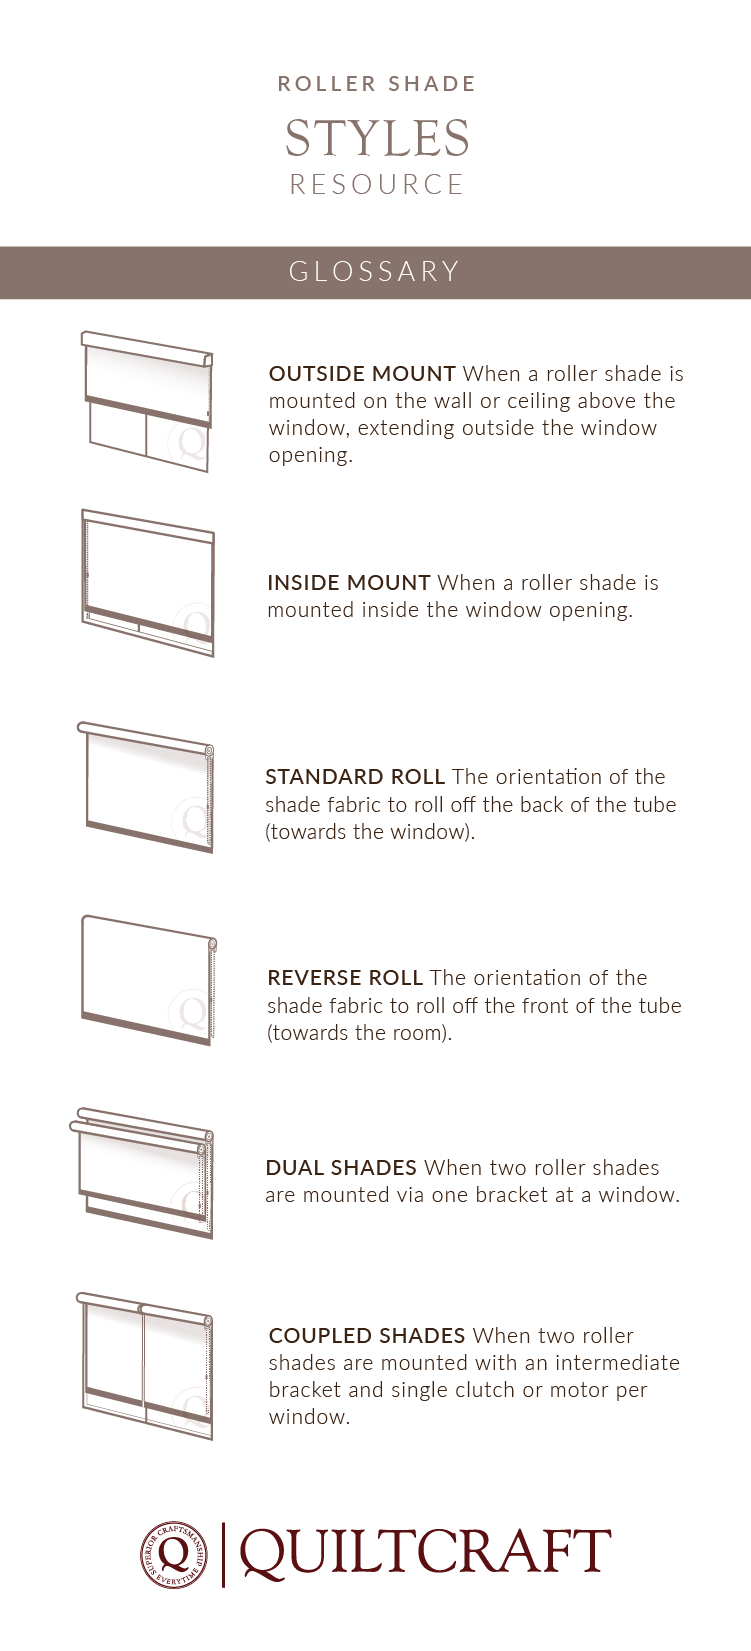 Roller Shade Style Glossary